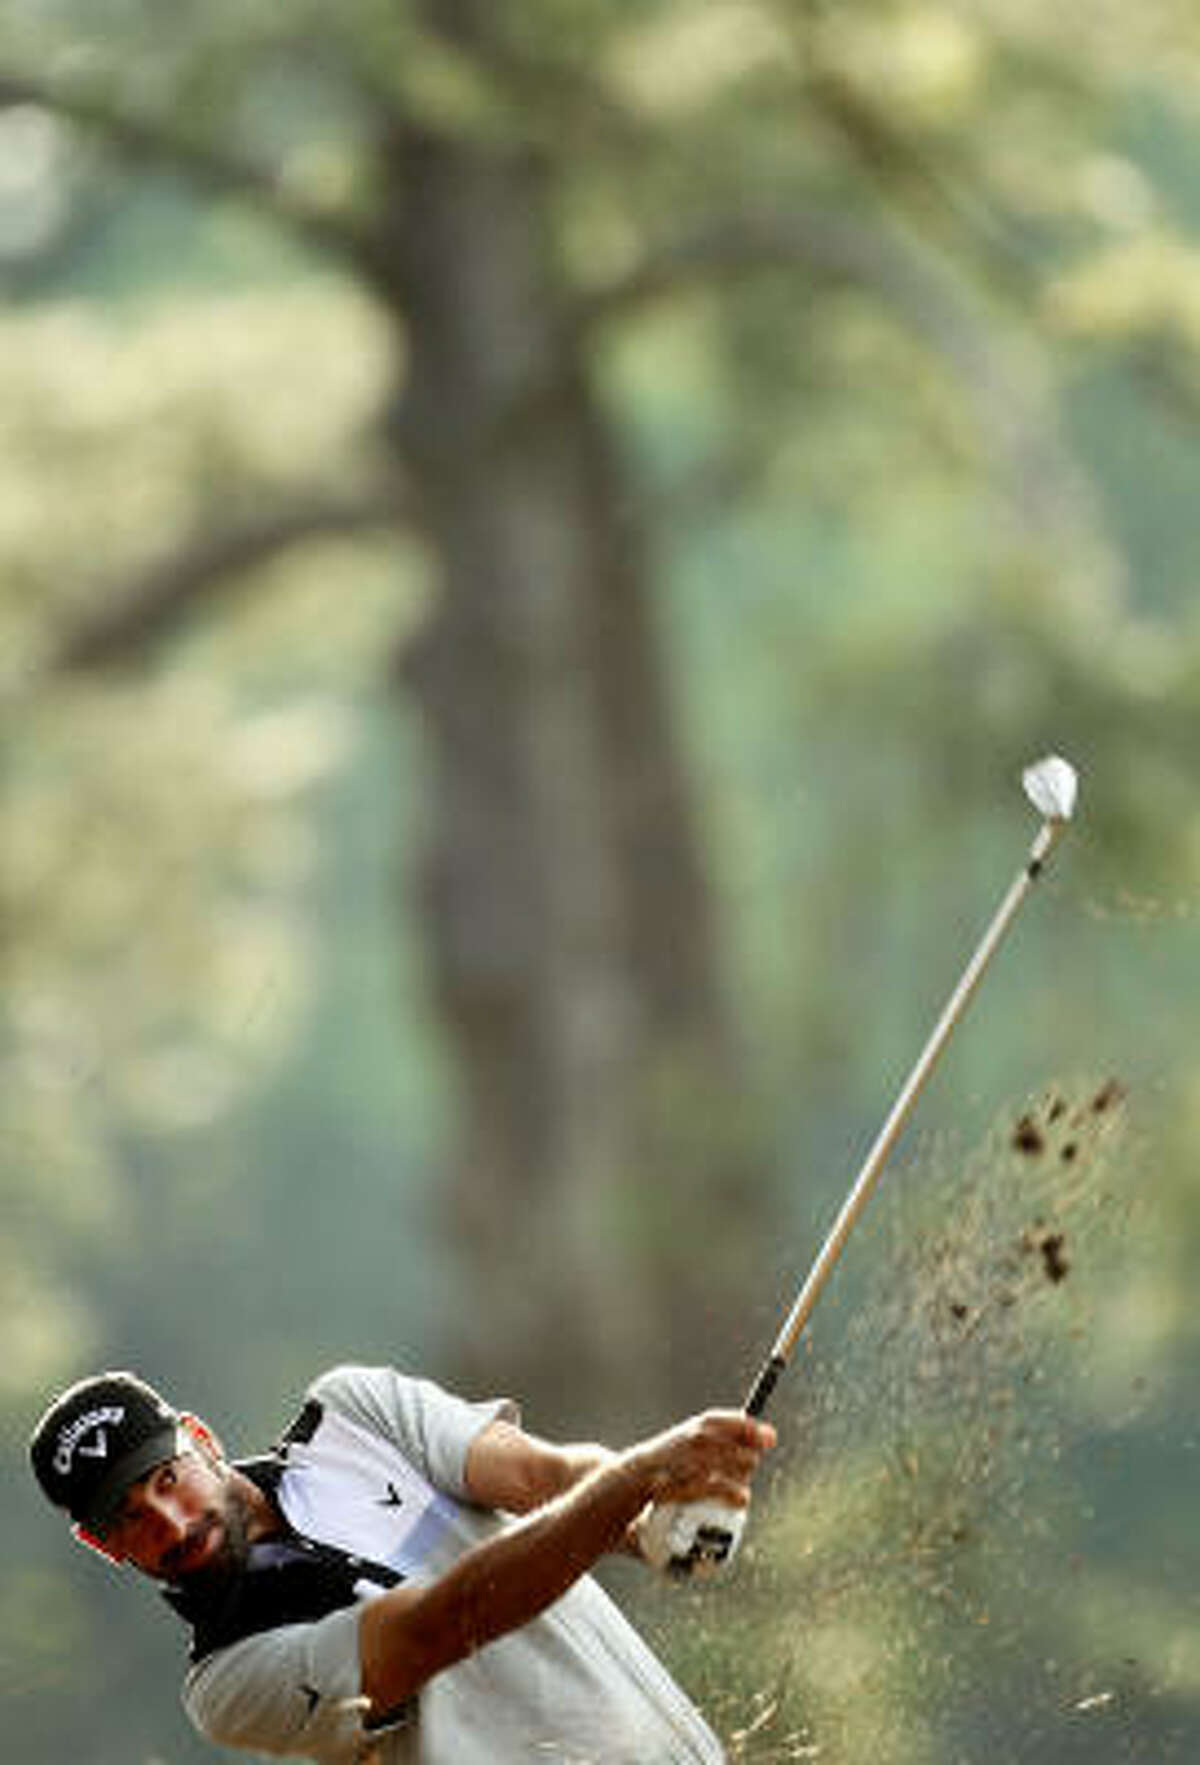 Alvaro Quiros hits his approach shot on the 14th hole.